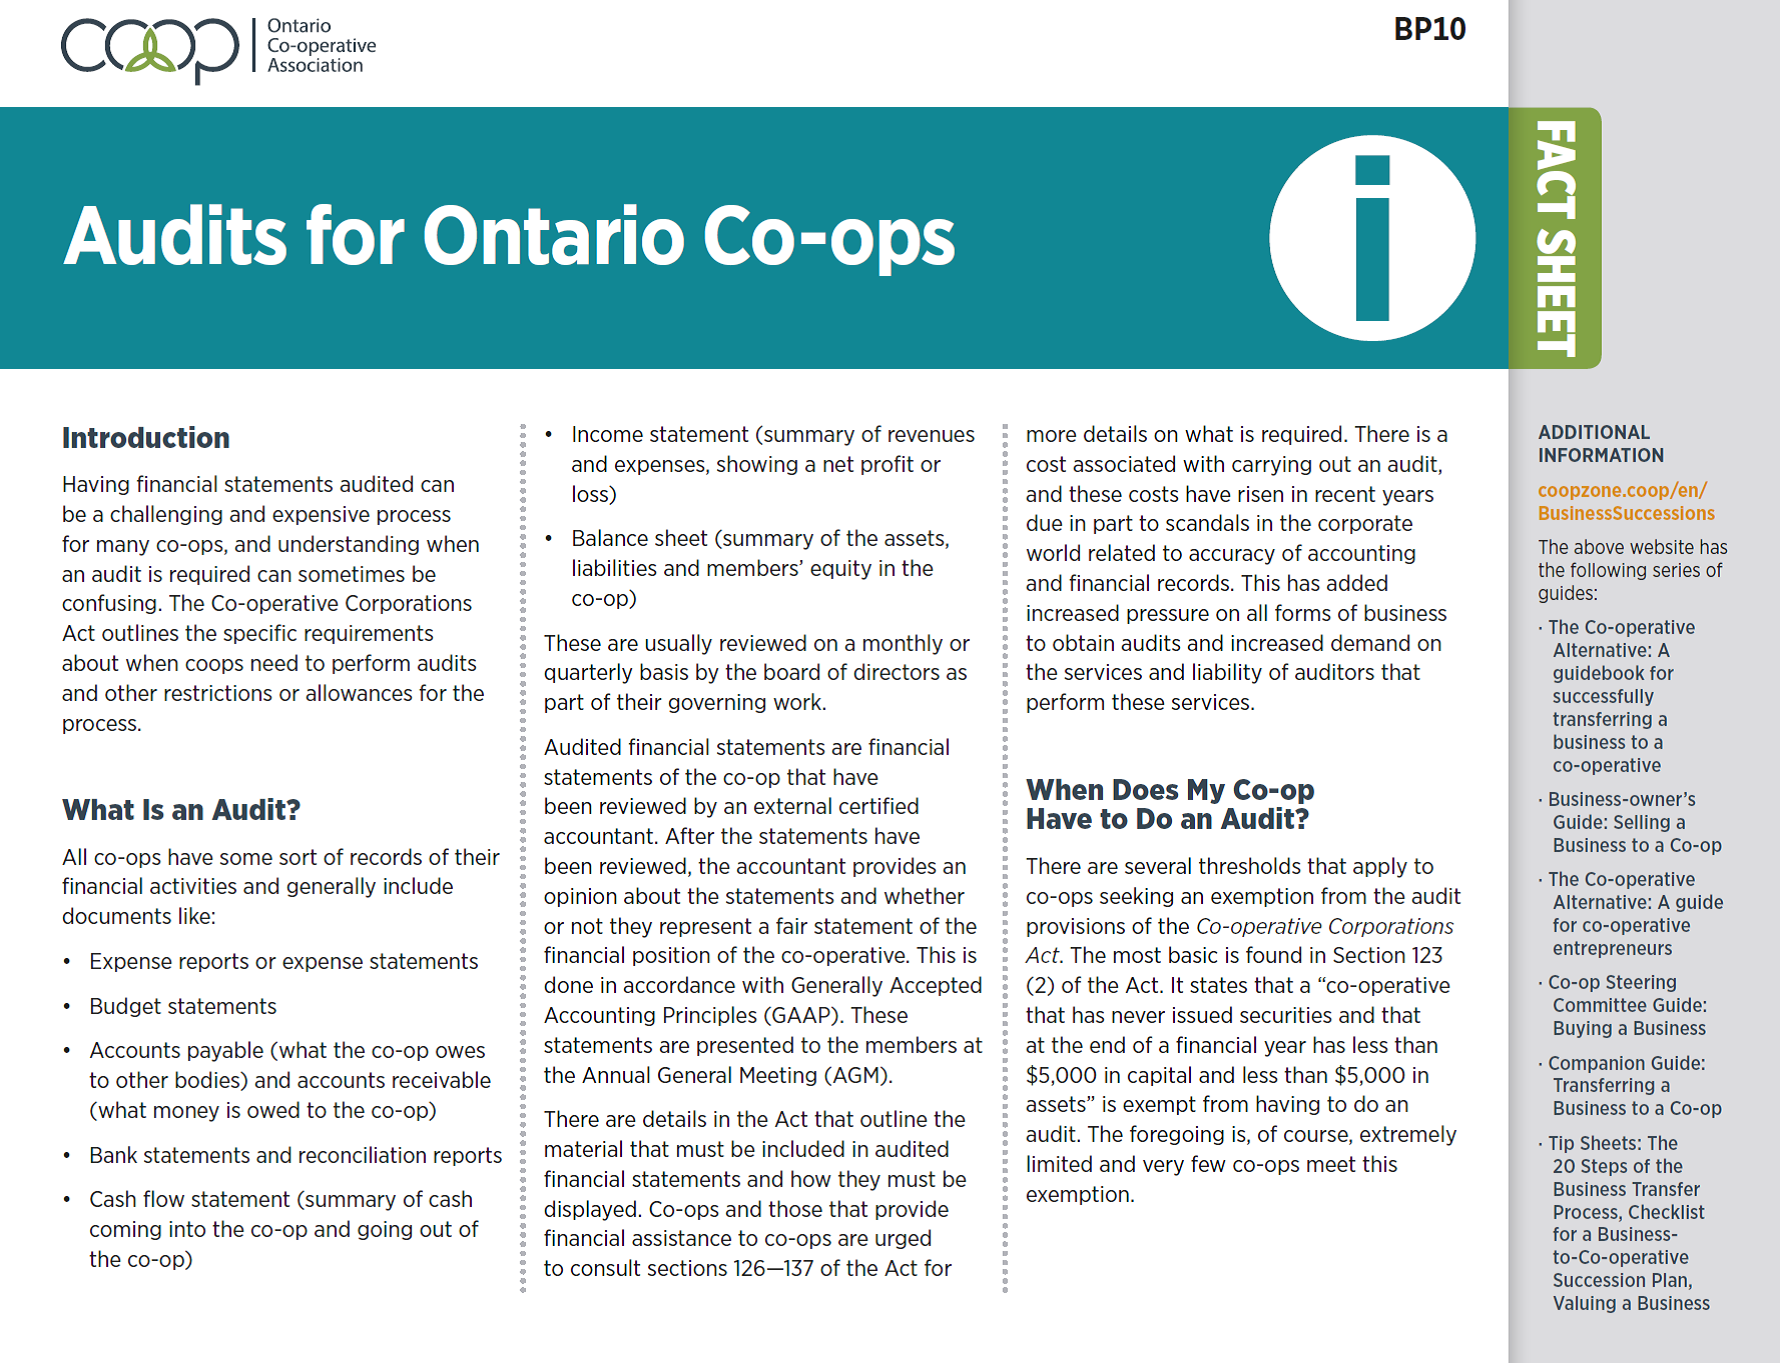 Audits for Ontario Co-ops